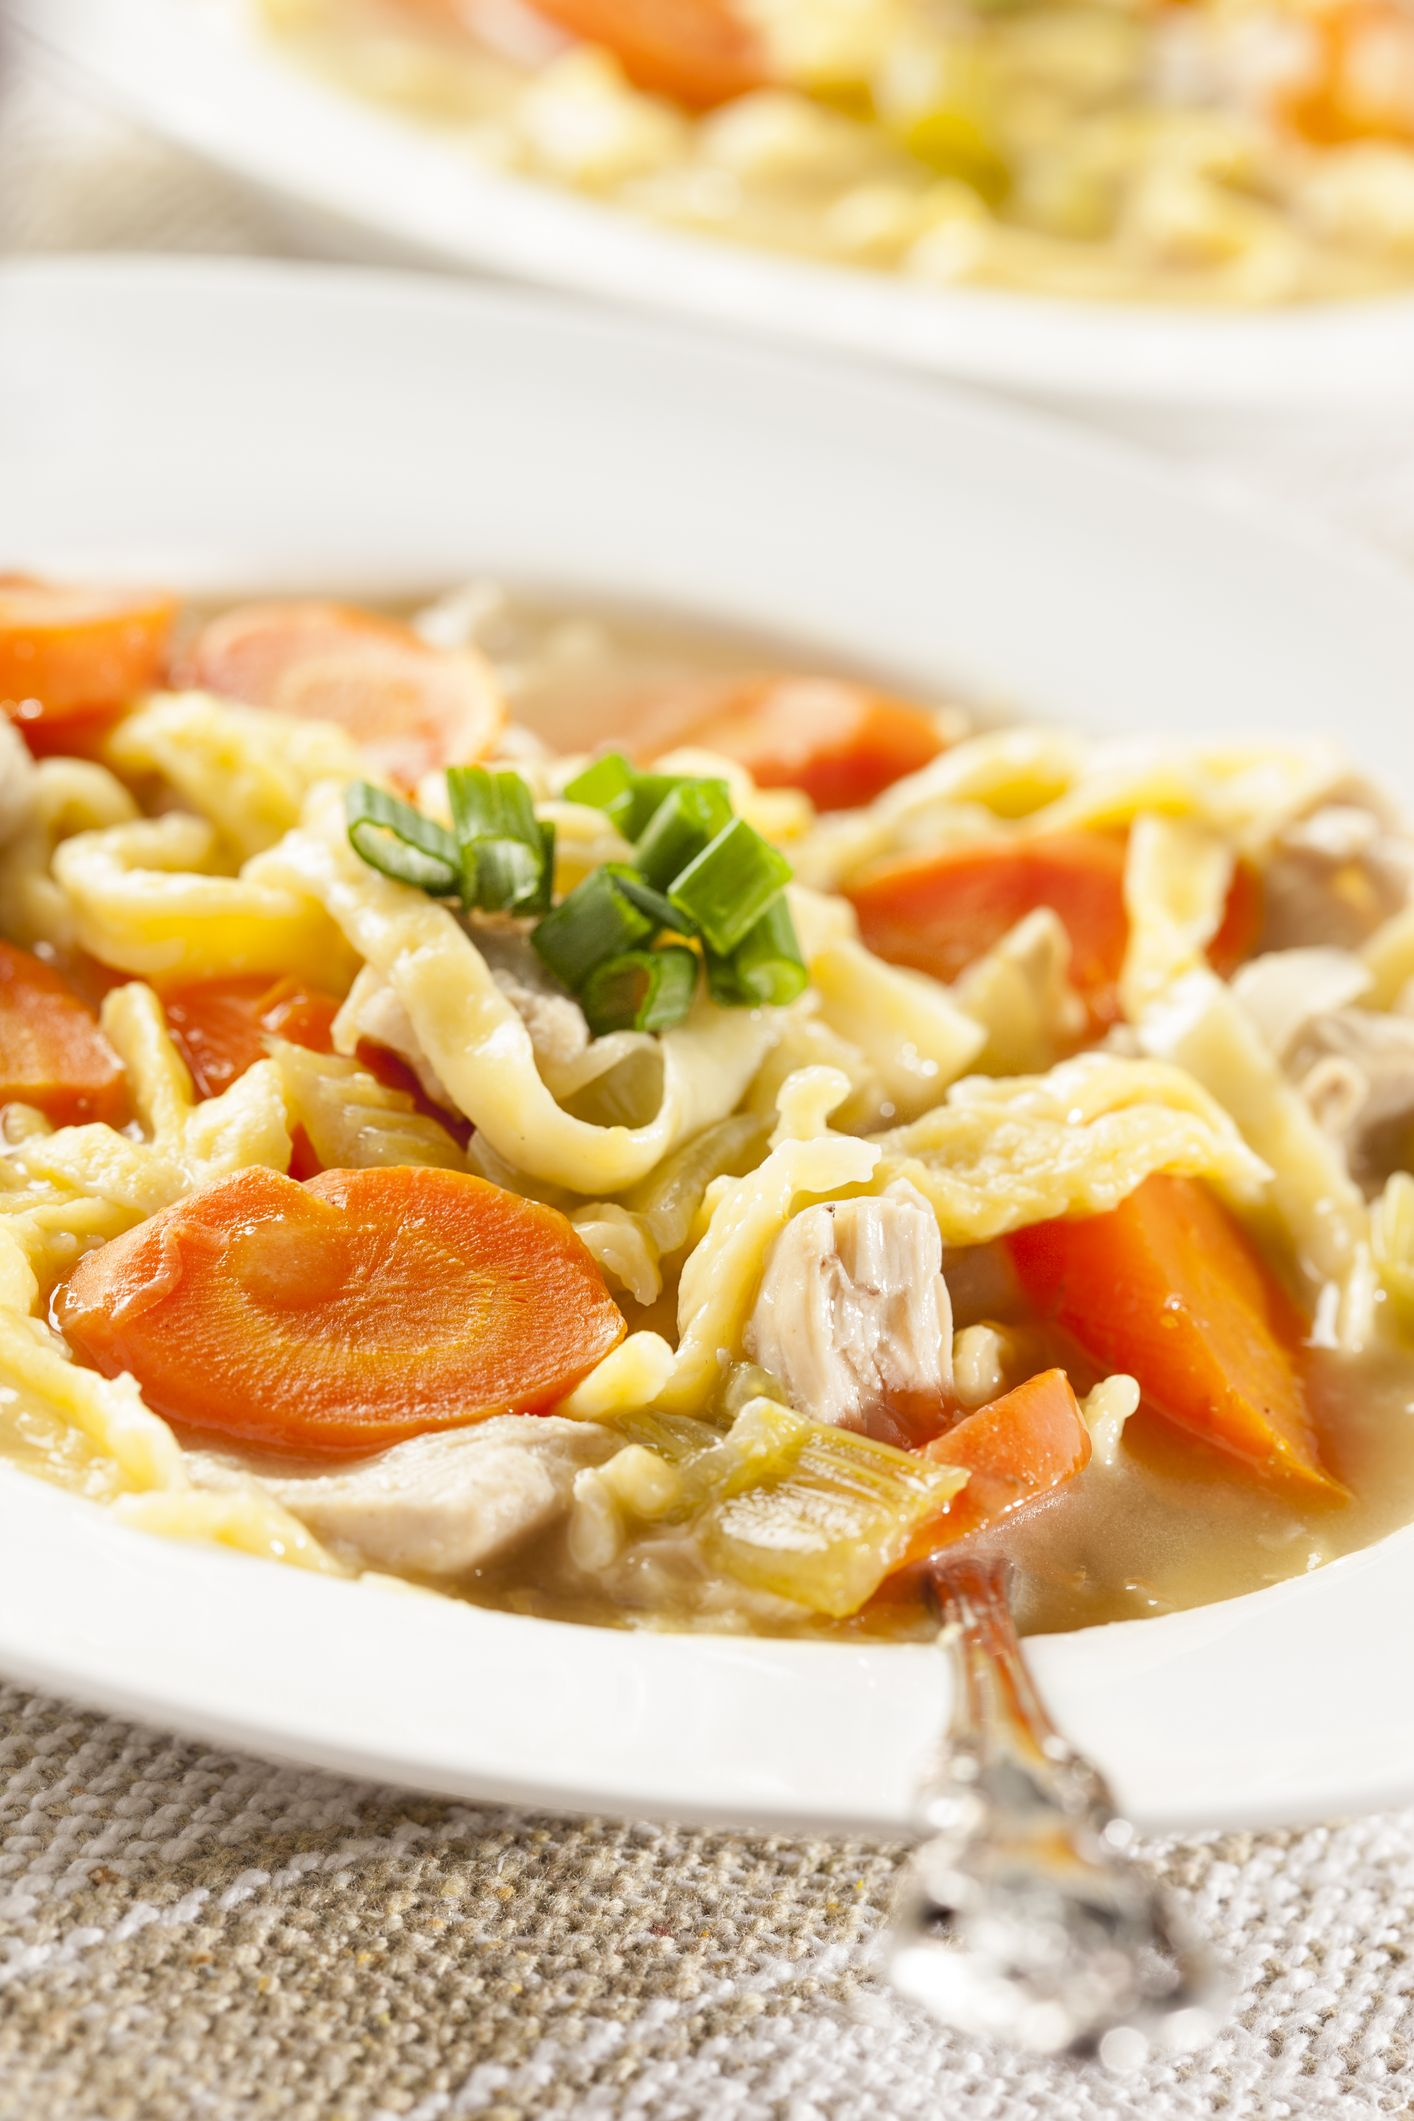 Homemade Turkey Noodle Soup Recipe from Grandmother's